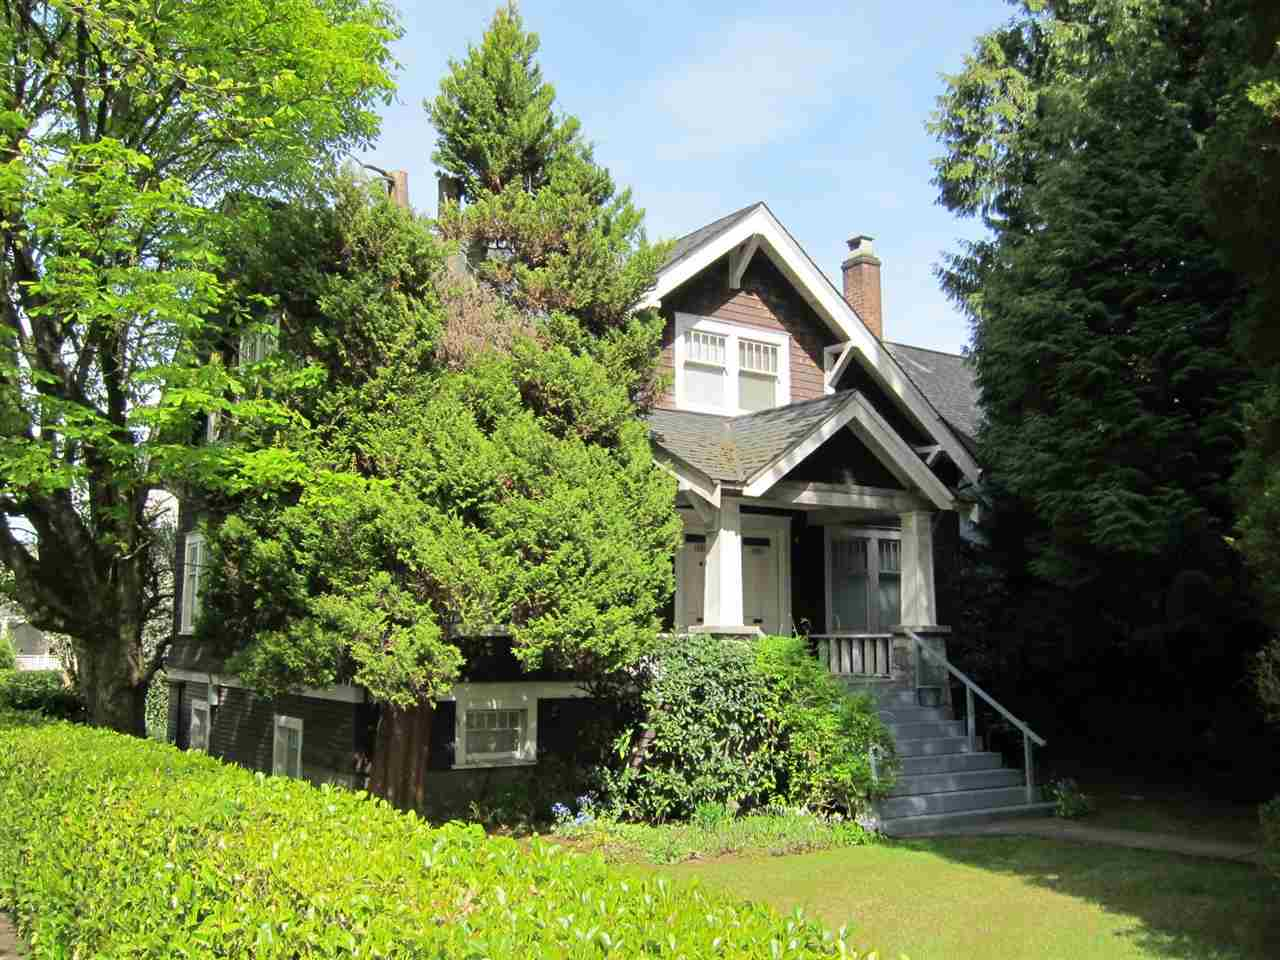 Main Photo: 1893 - 1895 W 15TH Avenue in Vancouver: Kitsilano House for sale (Vancouver West)  : MLS® # R2062477